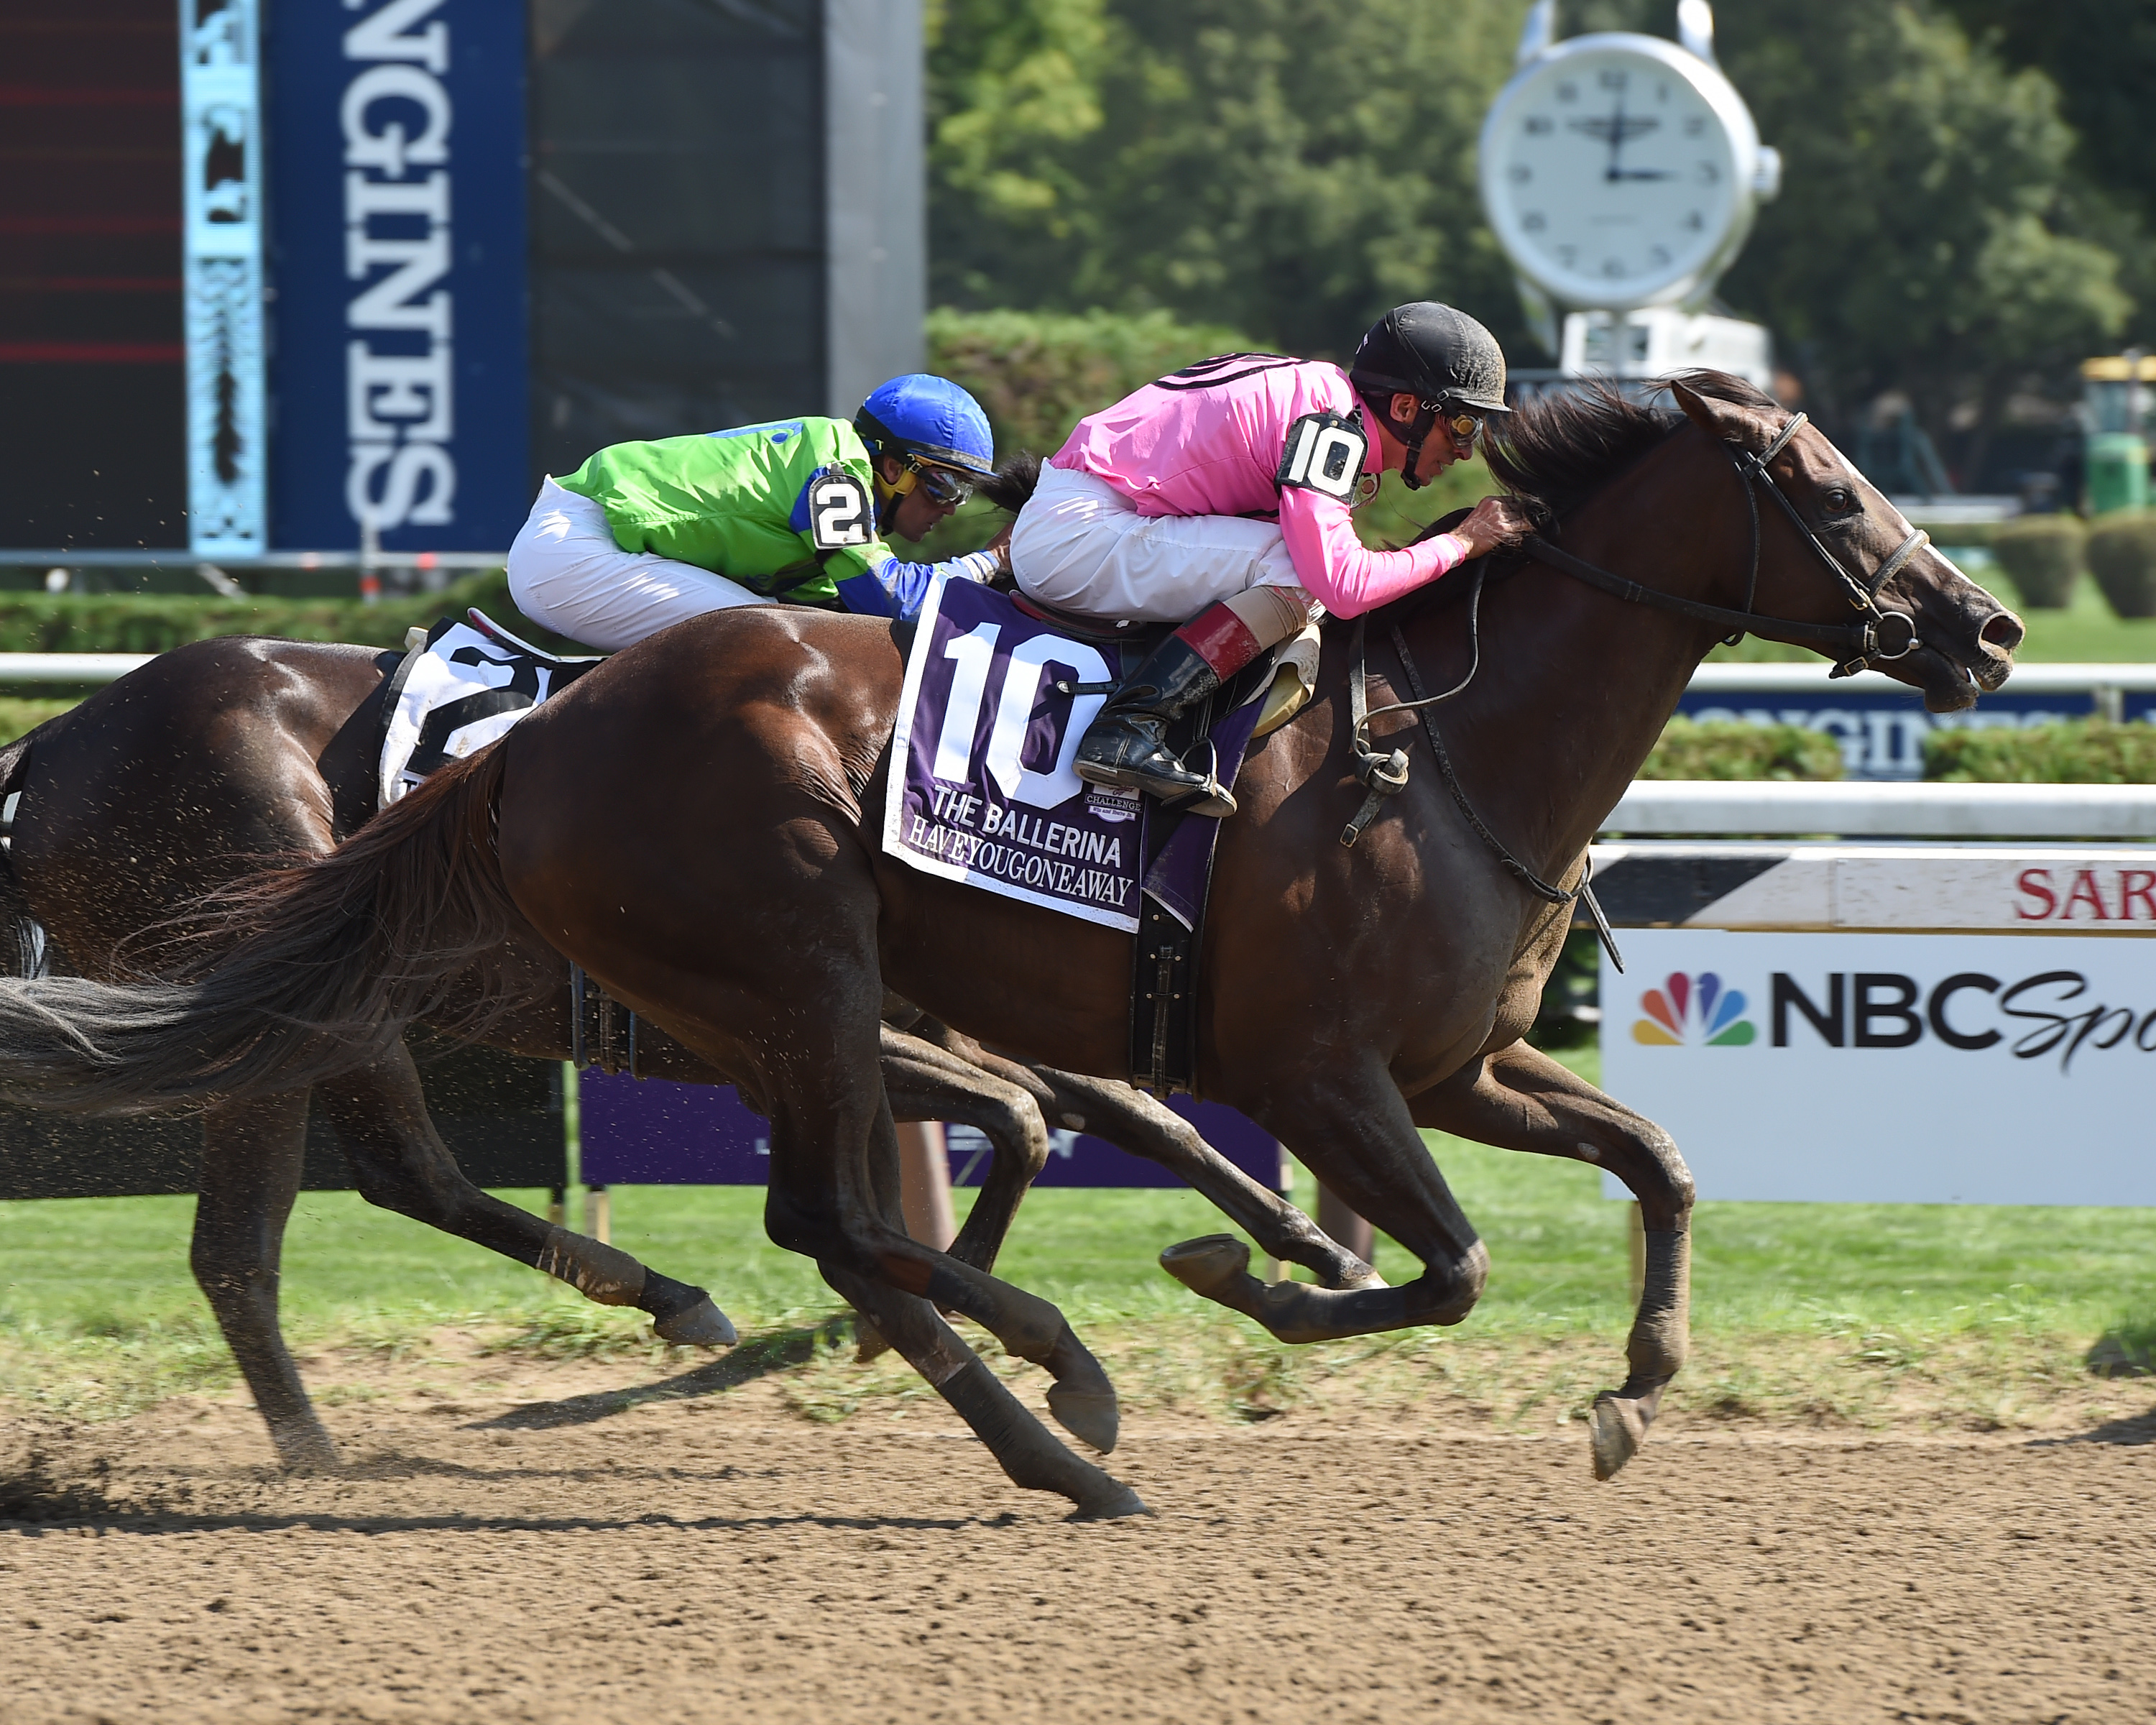 Haveyougoneaway wins the Ballerina at Saratoga. She now heads to Santa Anita on November 5 in the Breeders' Cup Filly & Mare Sprint. Photo: NYRA.com